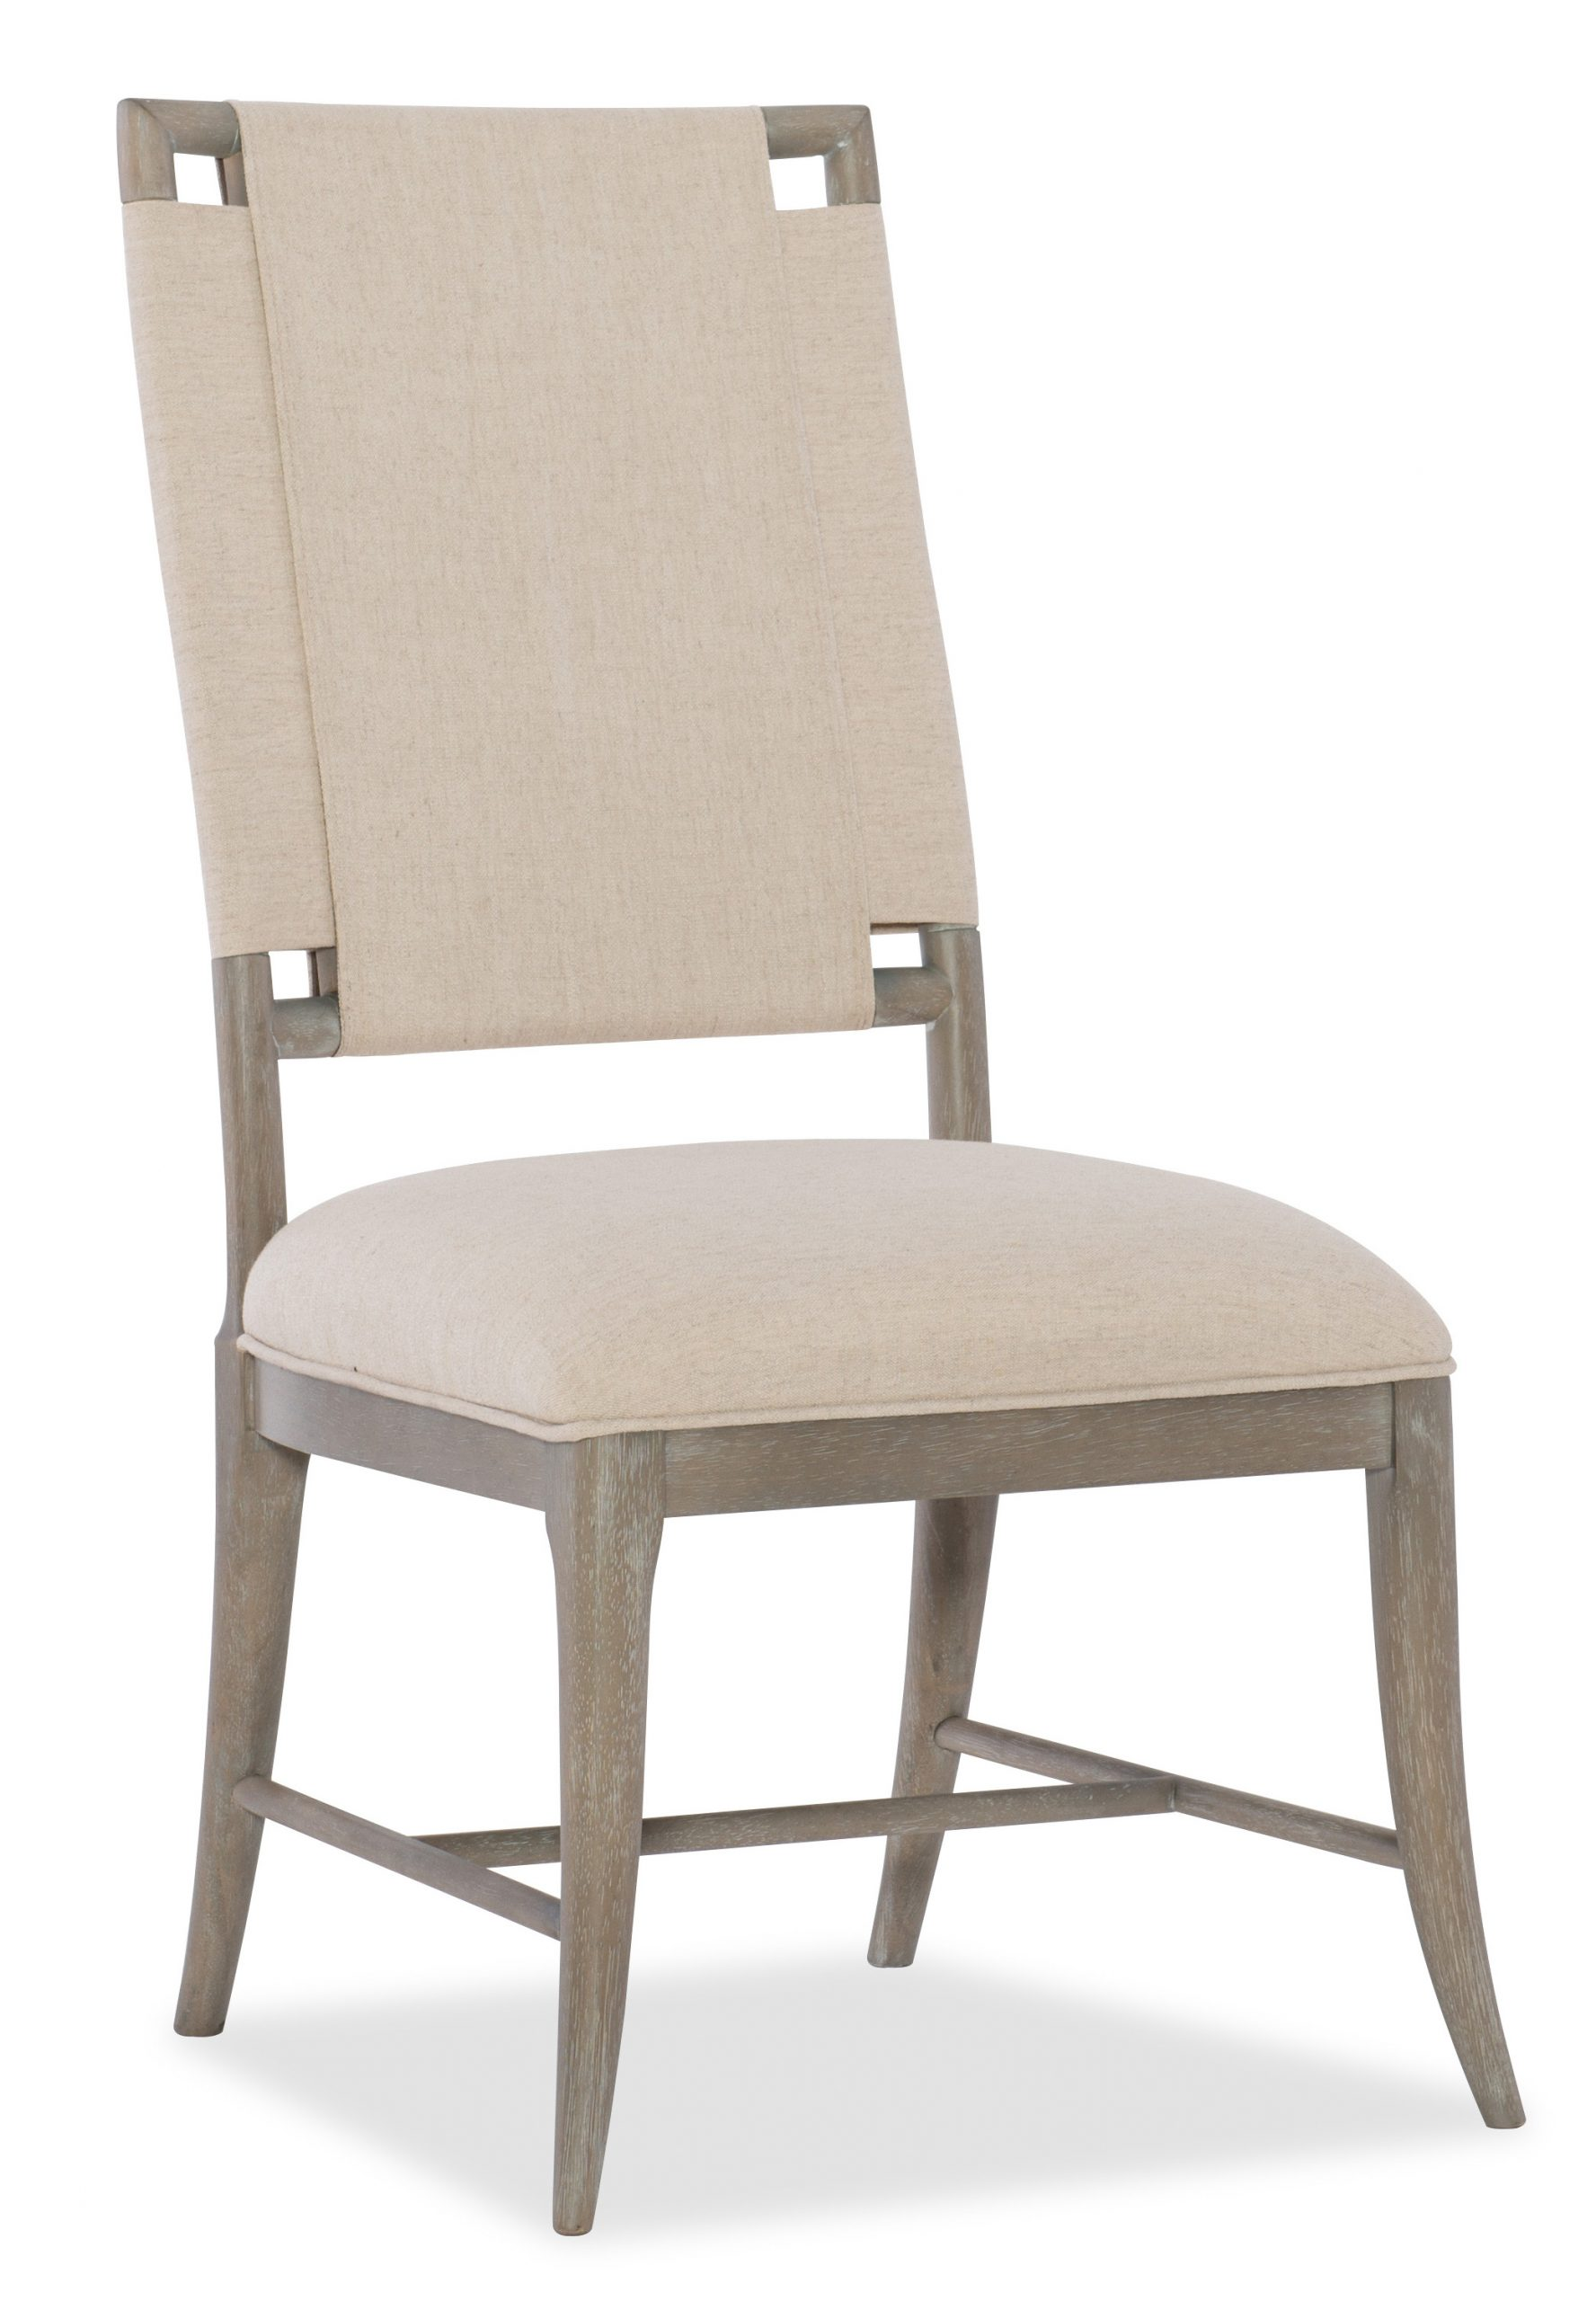 Affinity Upholstered Side Chair - 2 per carton/price ea